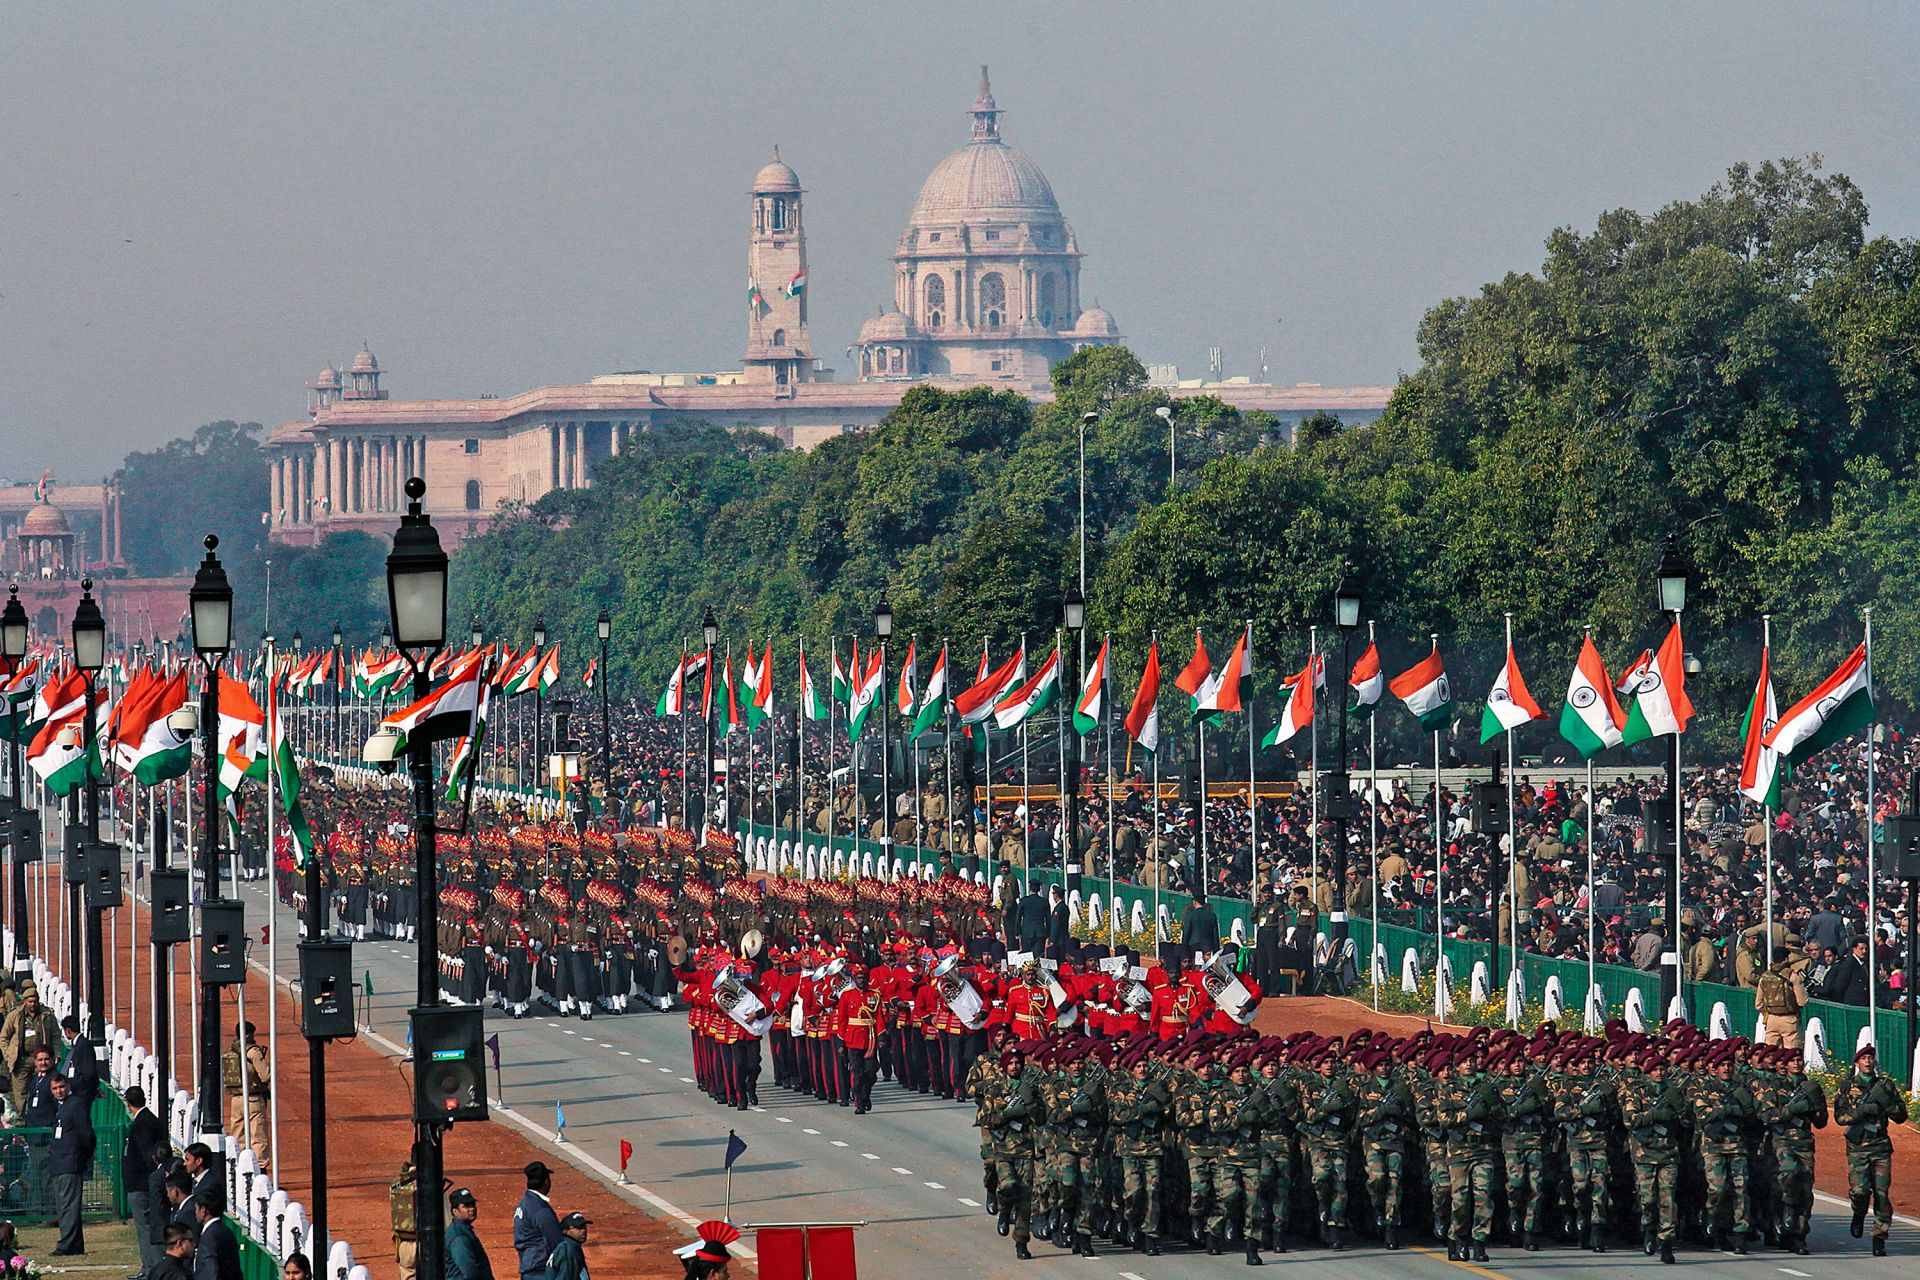 Indian Republic Day | Republic Day Celebration | DK Find Out